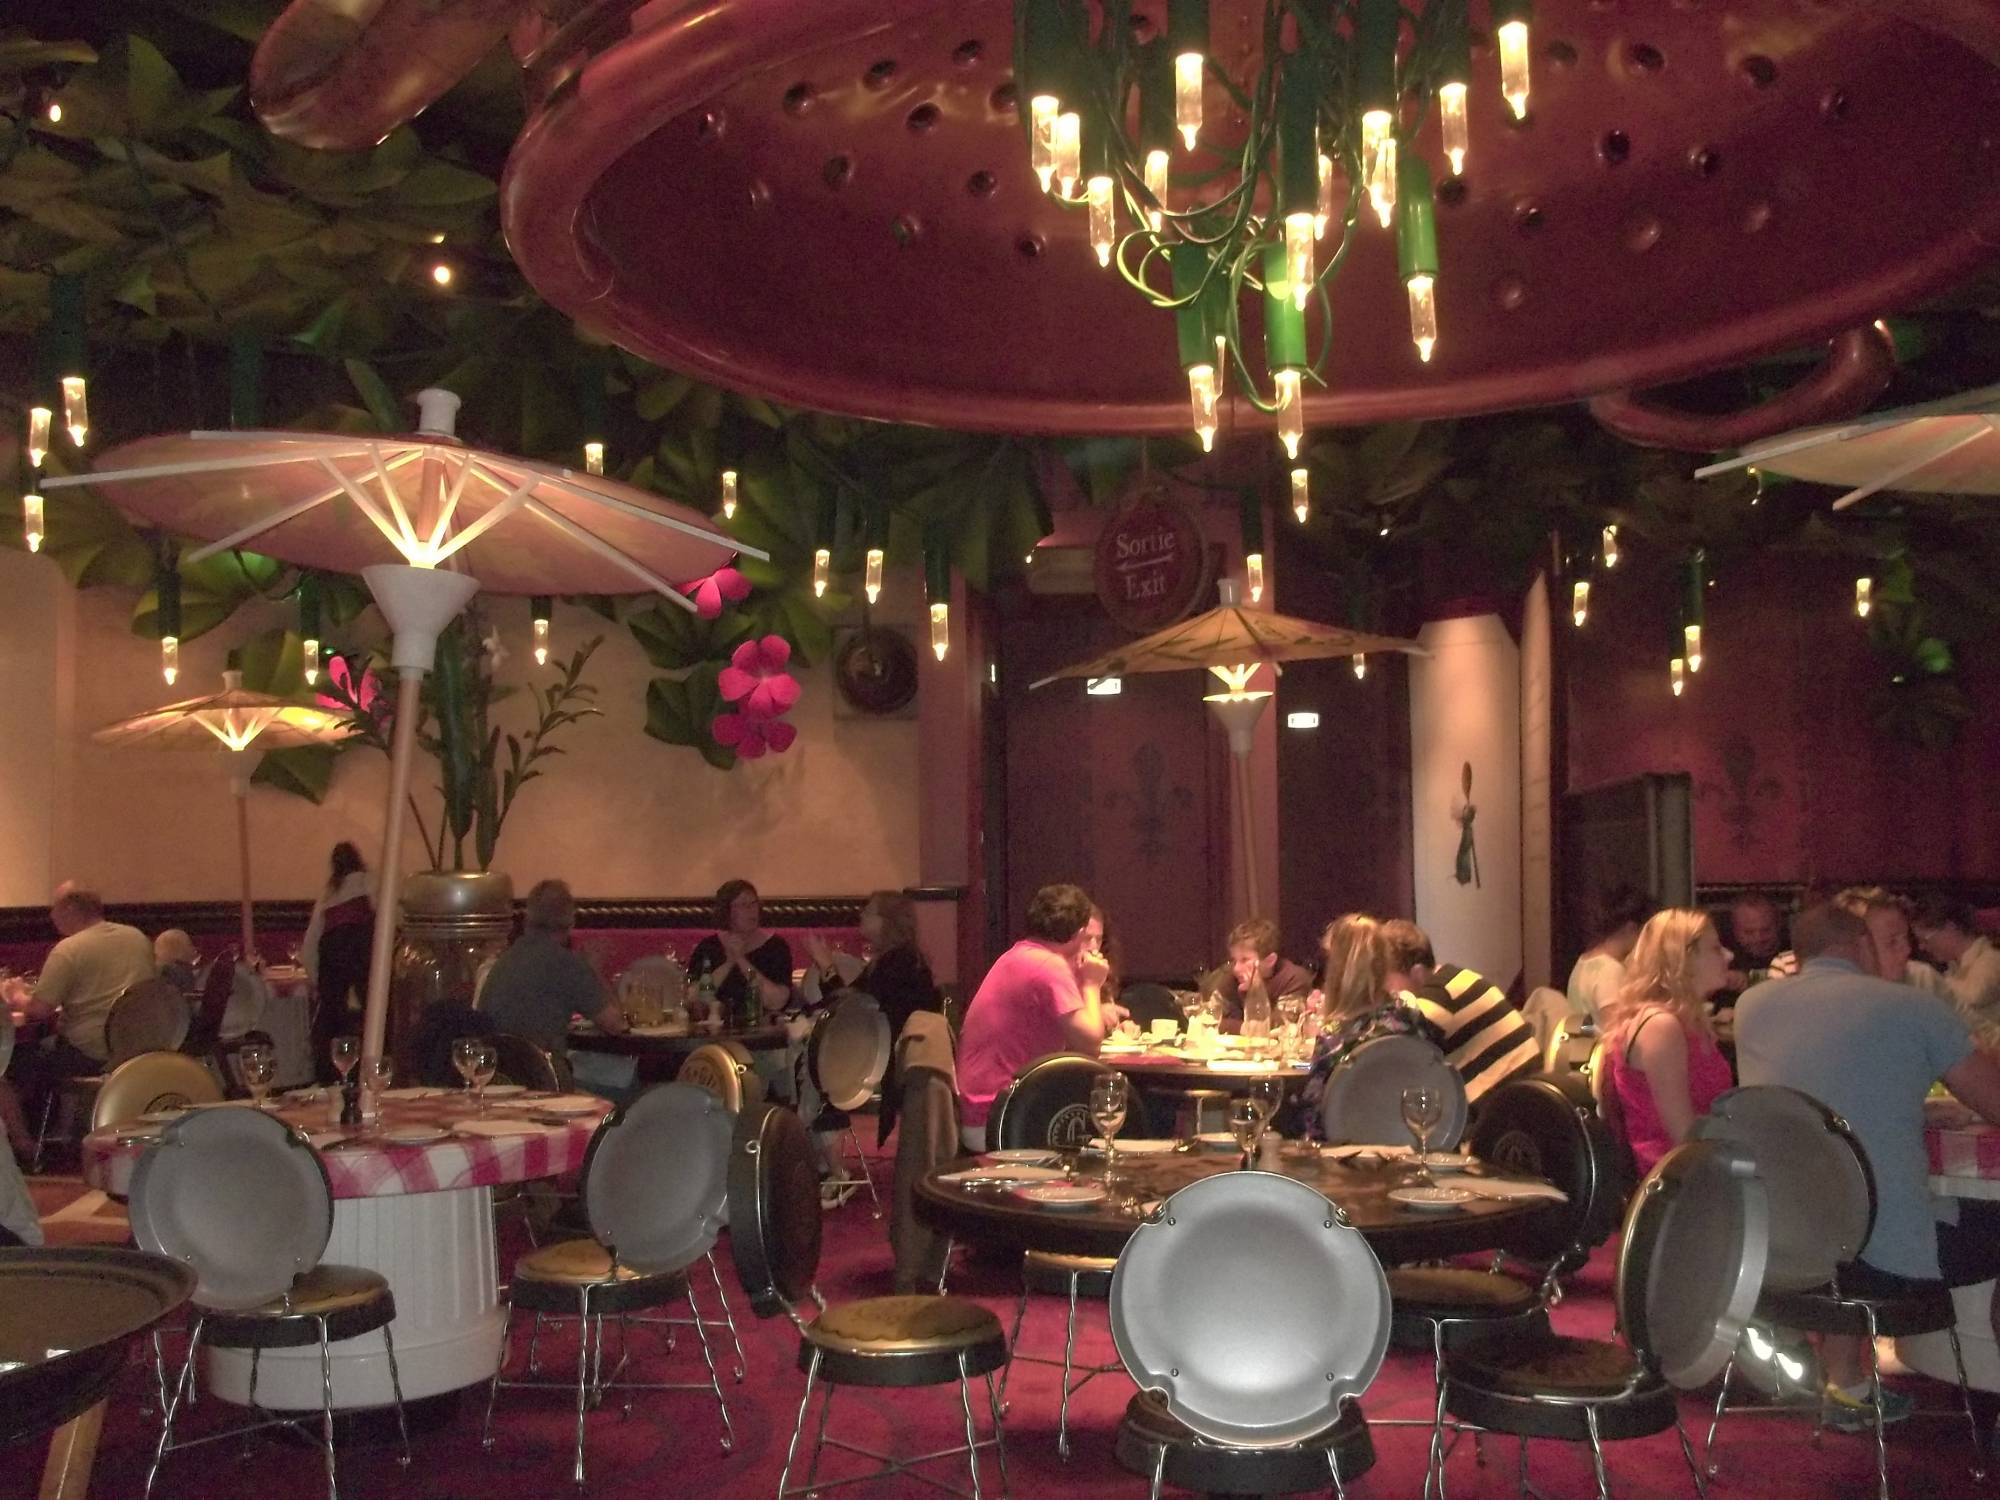 Enjoy the ratatouille at Bistro Chez Remy in Disneyland Paris |PassPorter.com